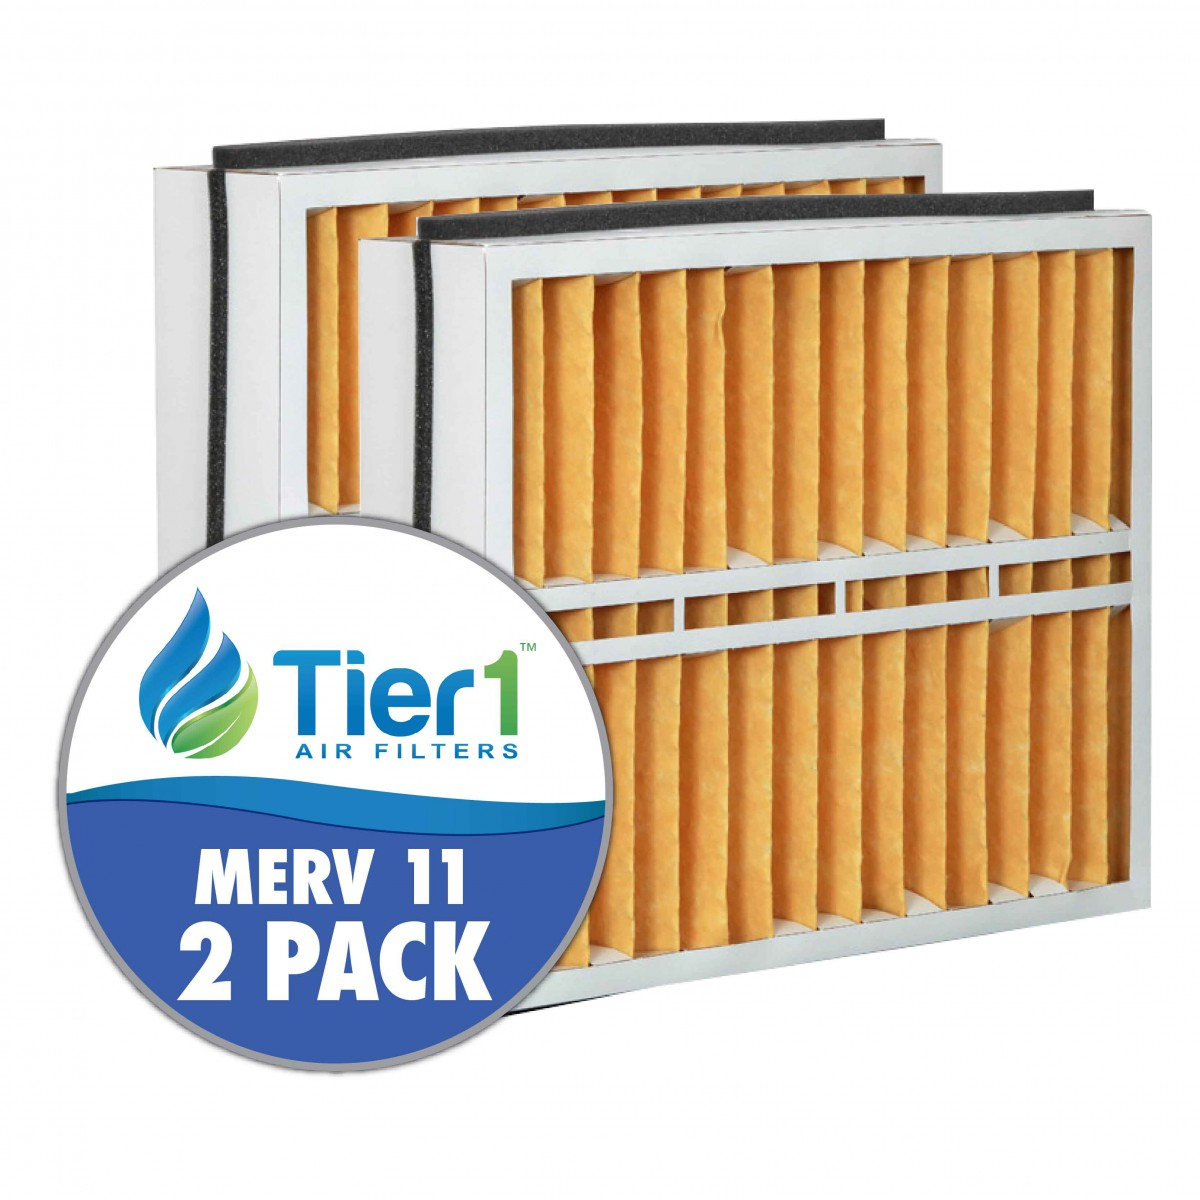 American Standard 17 5x27x5 Merv 11 Comparable Air Filter